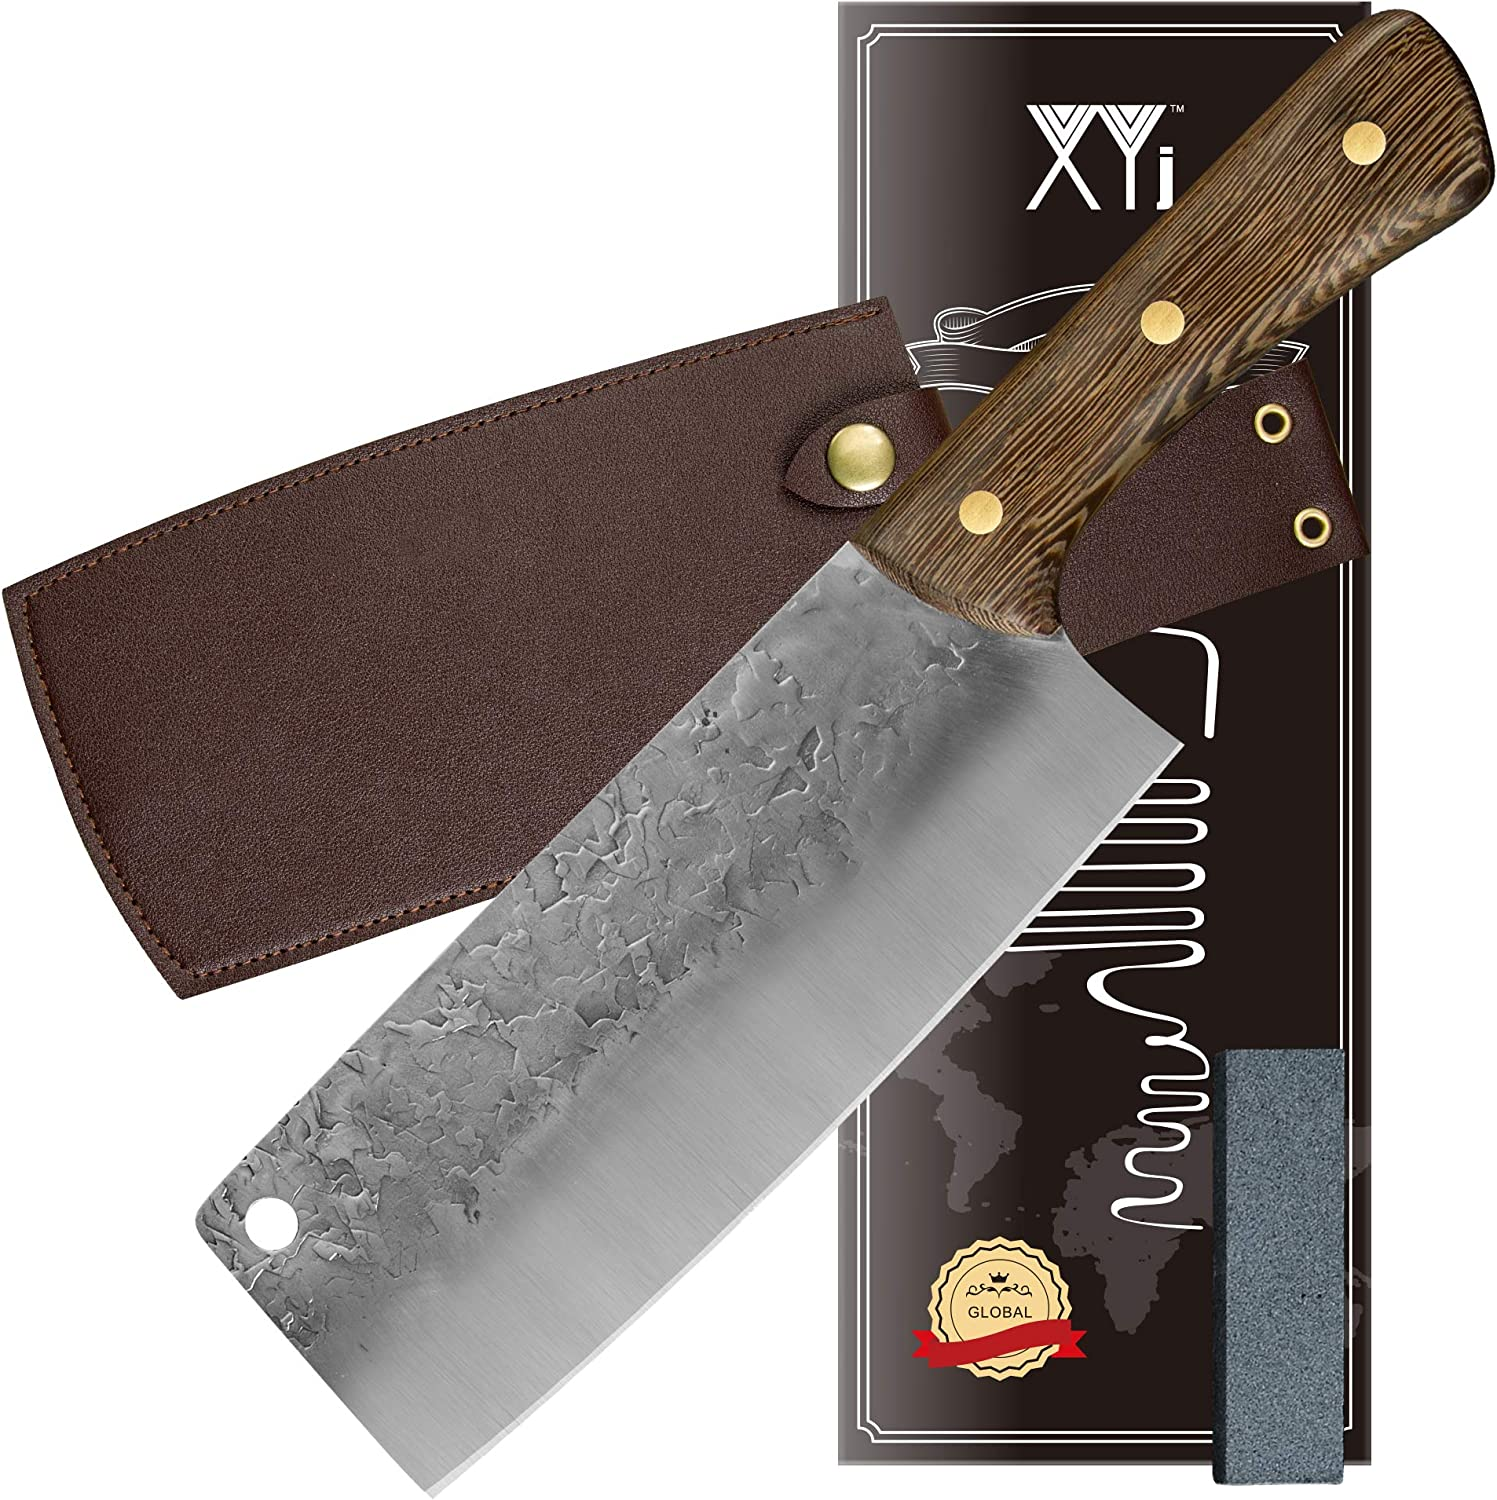 XYJ FULL TANG New Free Shipping Kitchen Max 51% OFF Chef Knives S Cleaver Vegetable Meat 5Cr15